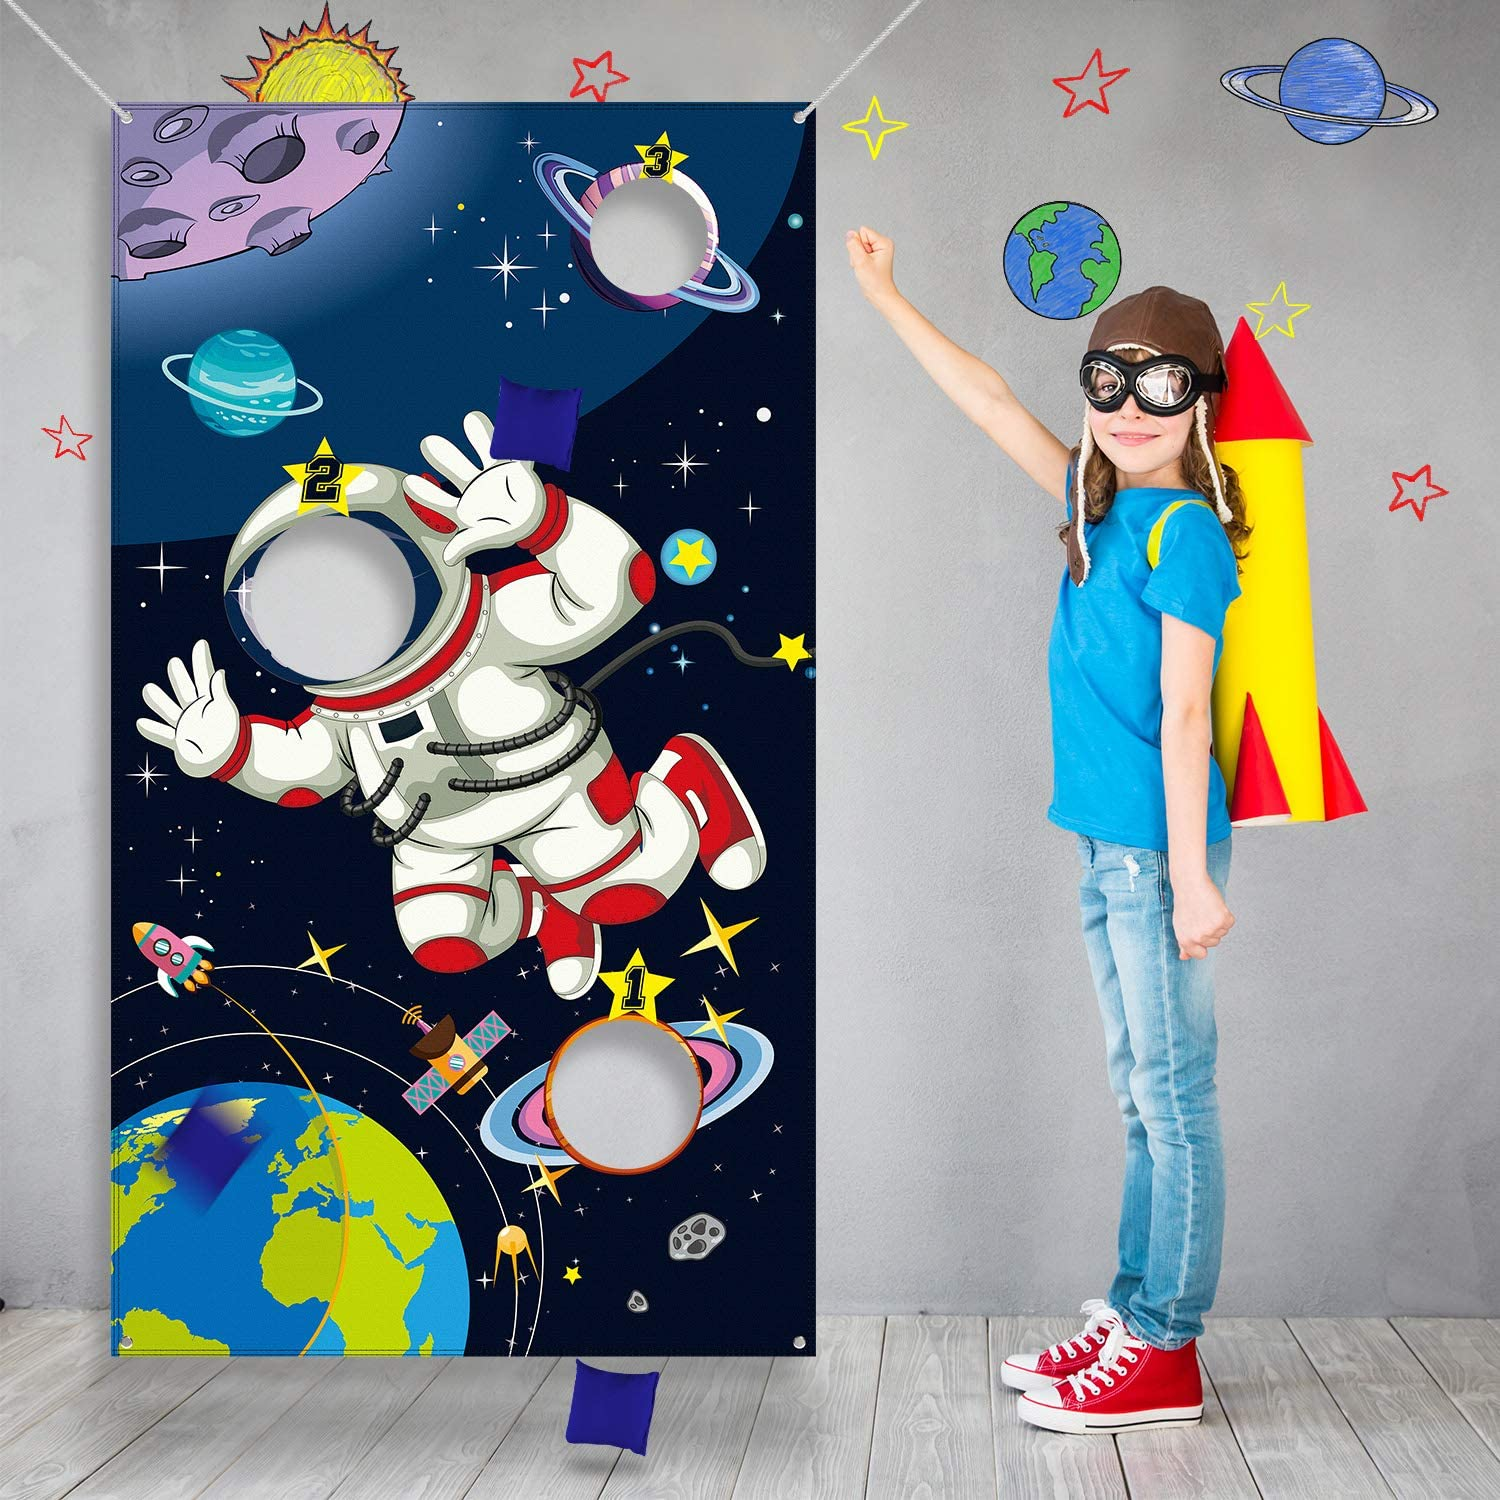 Blulu Space Birthday Party Supplies,Space Game Birthday Party Astronaut Toy Astronaut Toss Games Sets for Kids and Adults in Solar System Party Activities